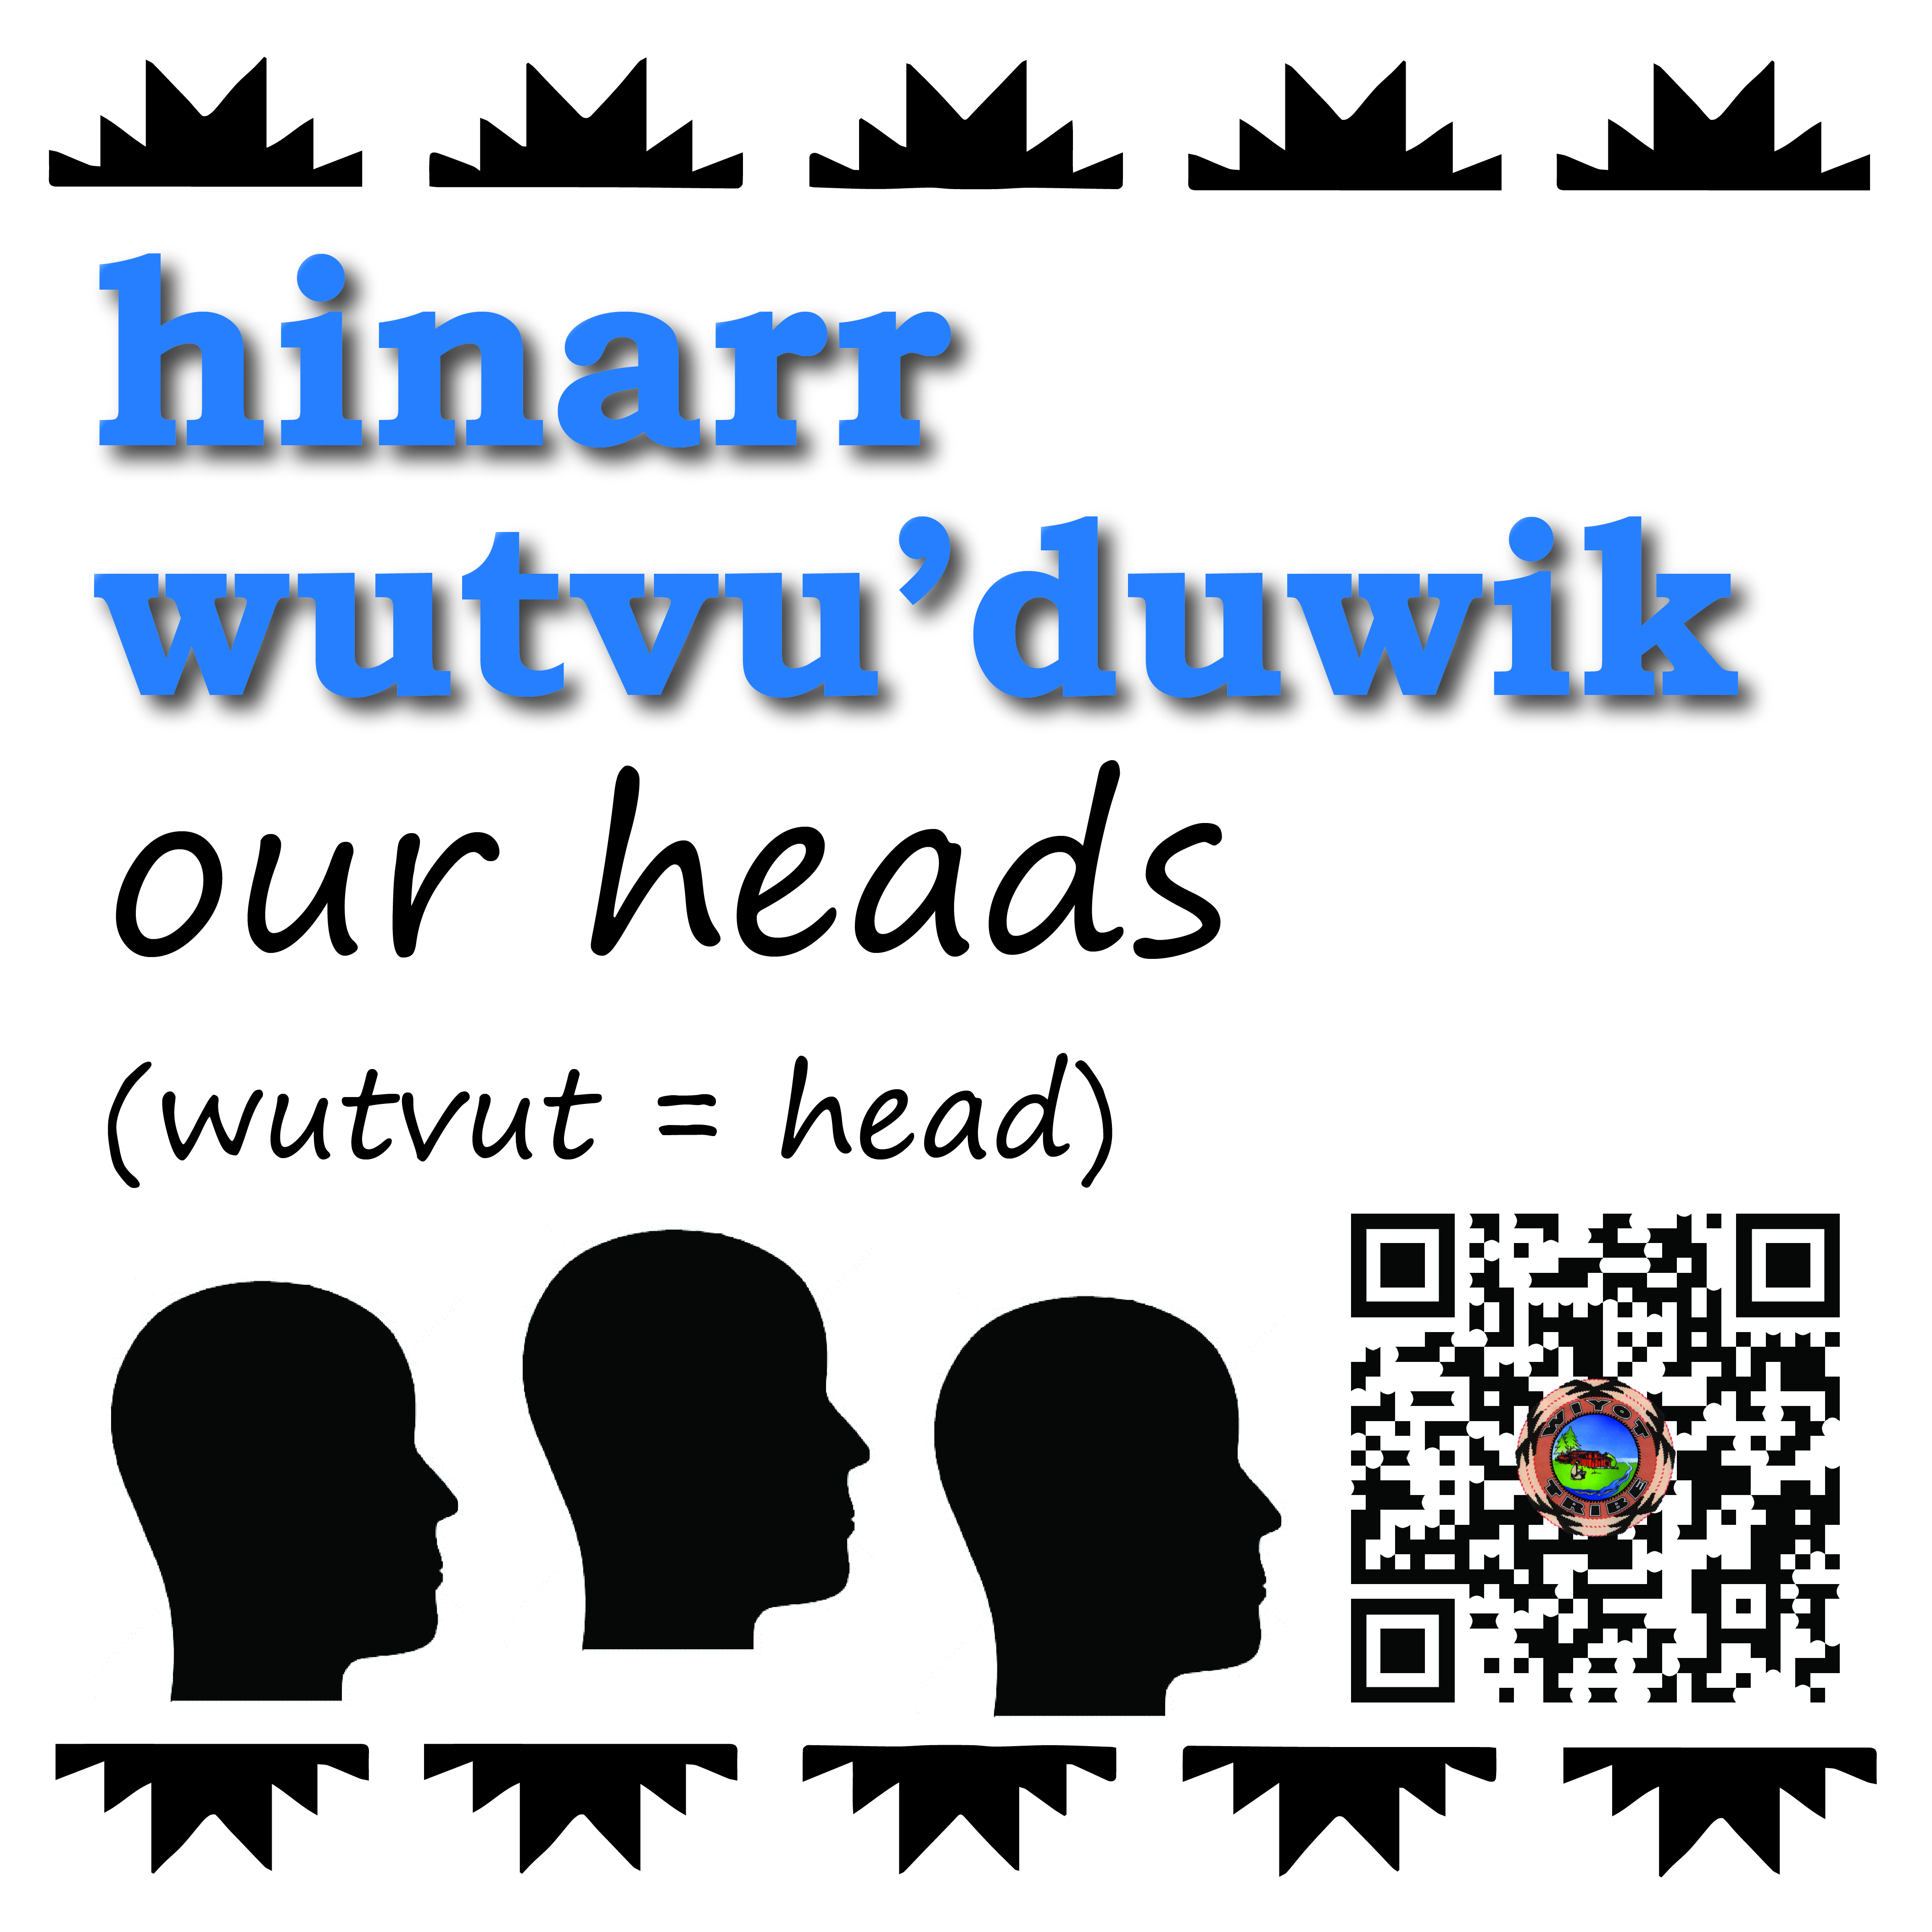 hinarr_wutvuduwik_our_heads